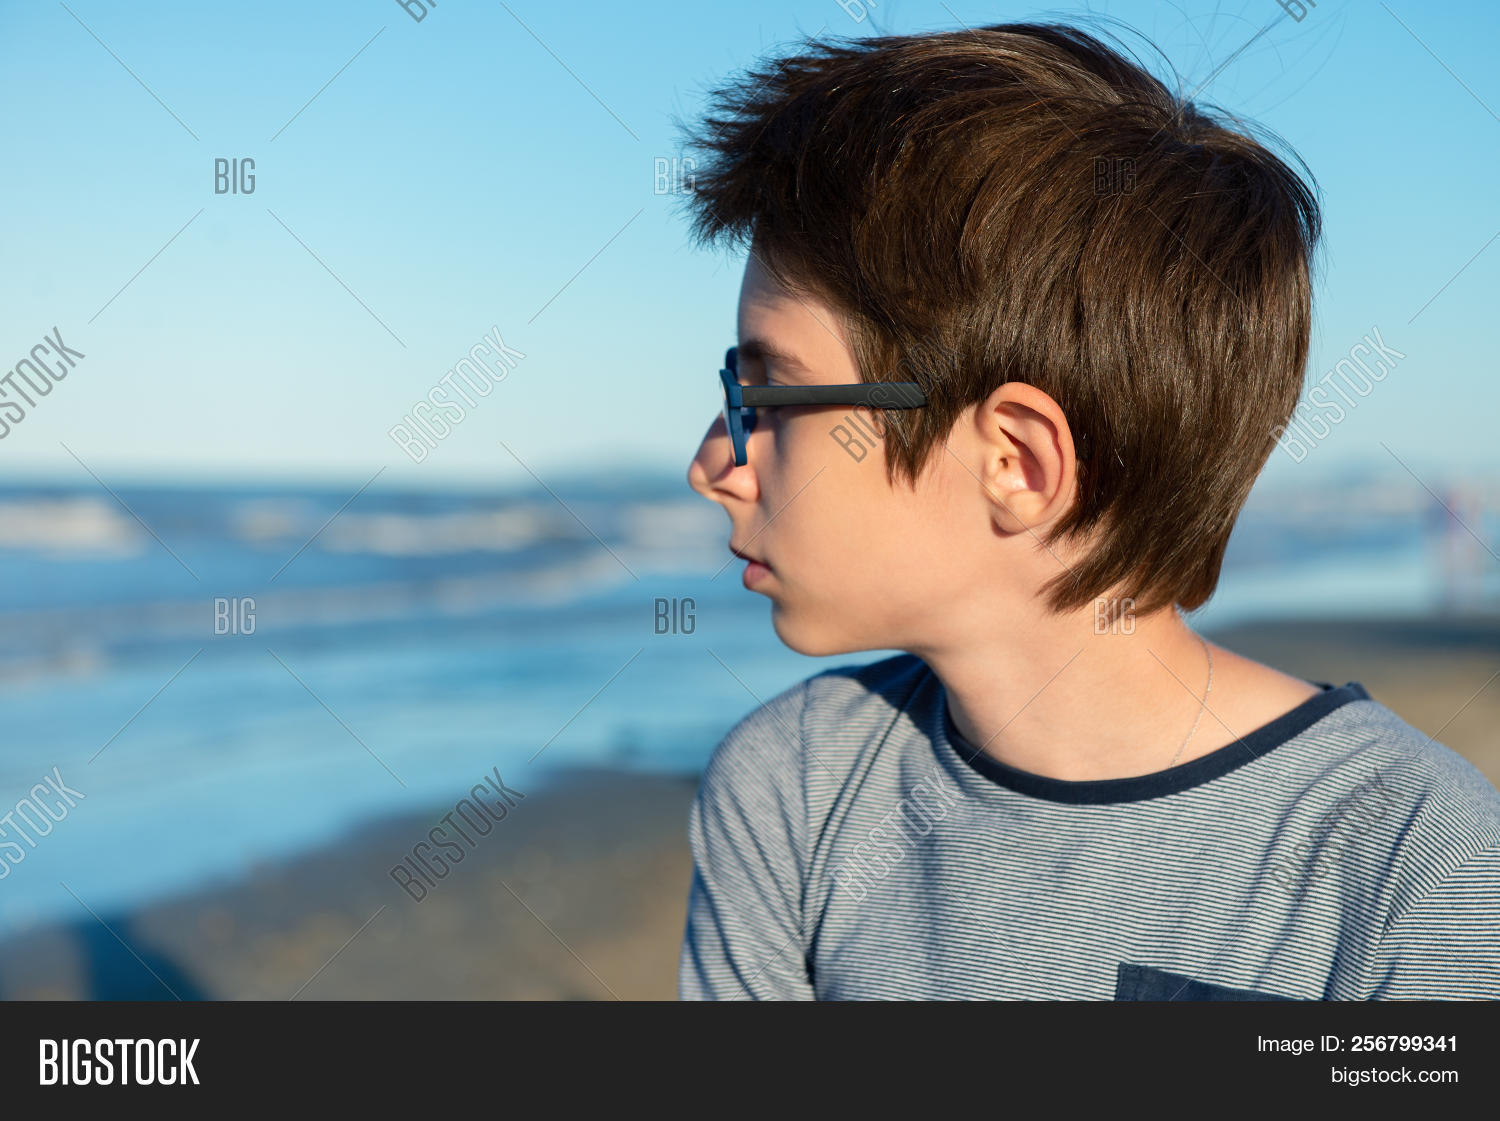 Young Boy Posing Image Photo Free Trial Bigstock